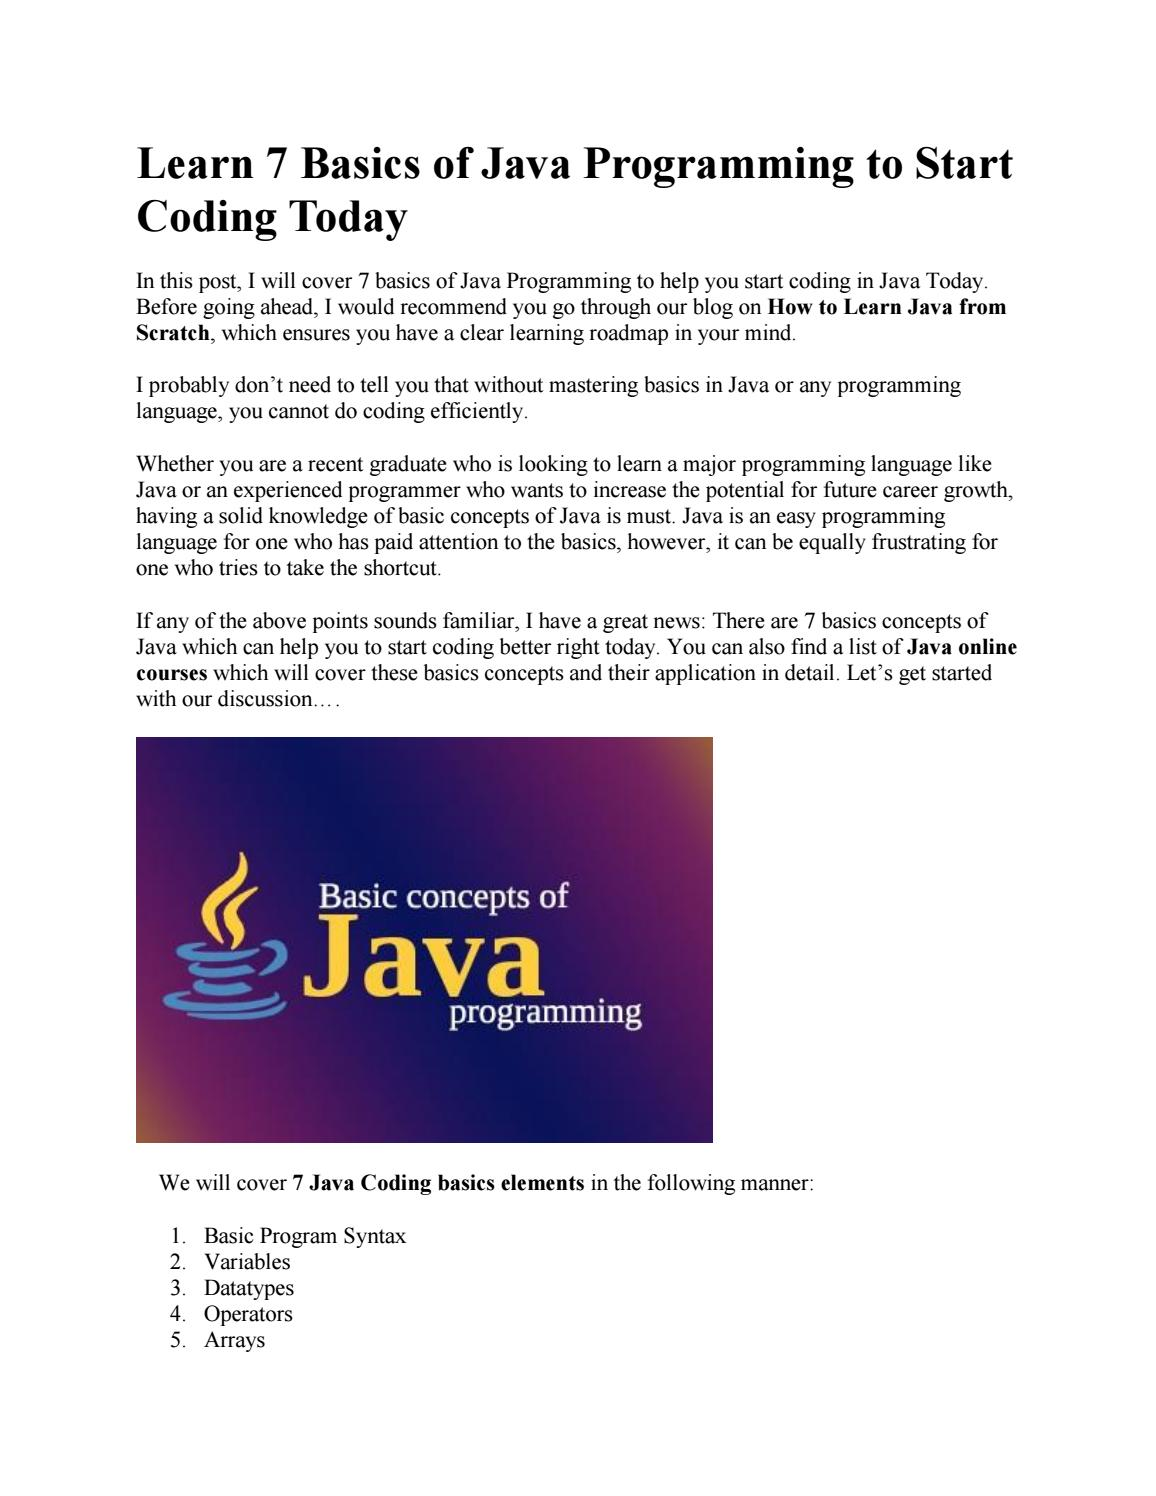 Learn 7 Basics of Java Programming to Start Coding Today by